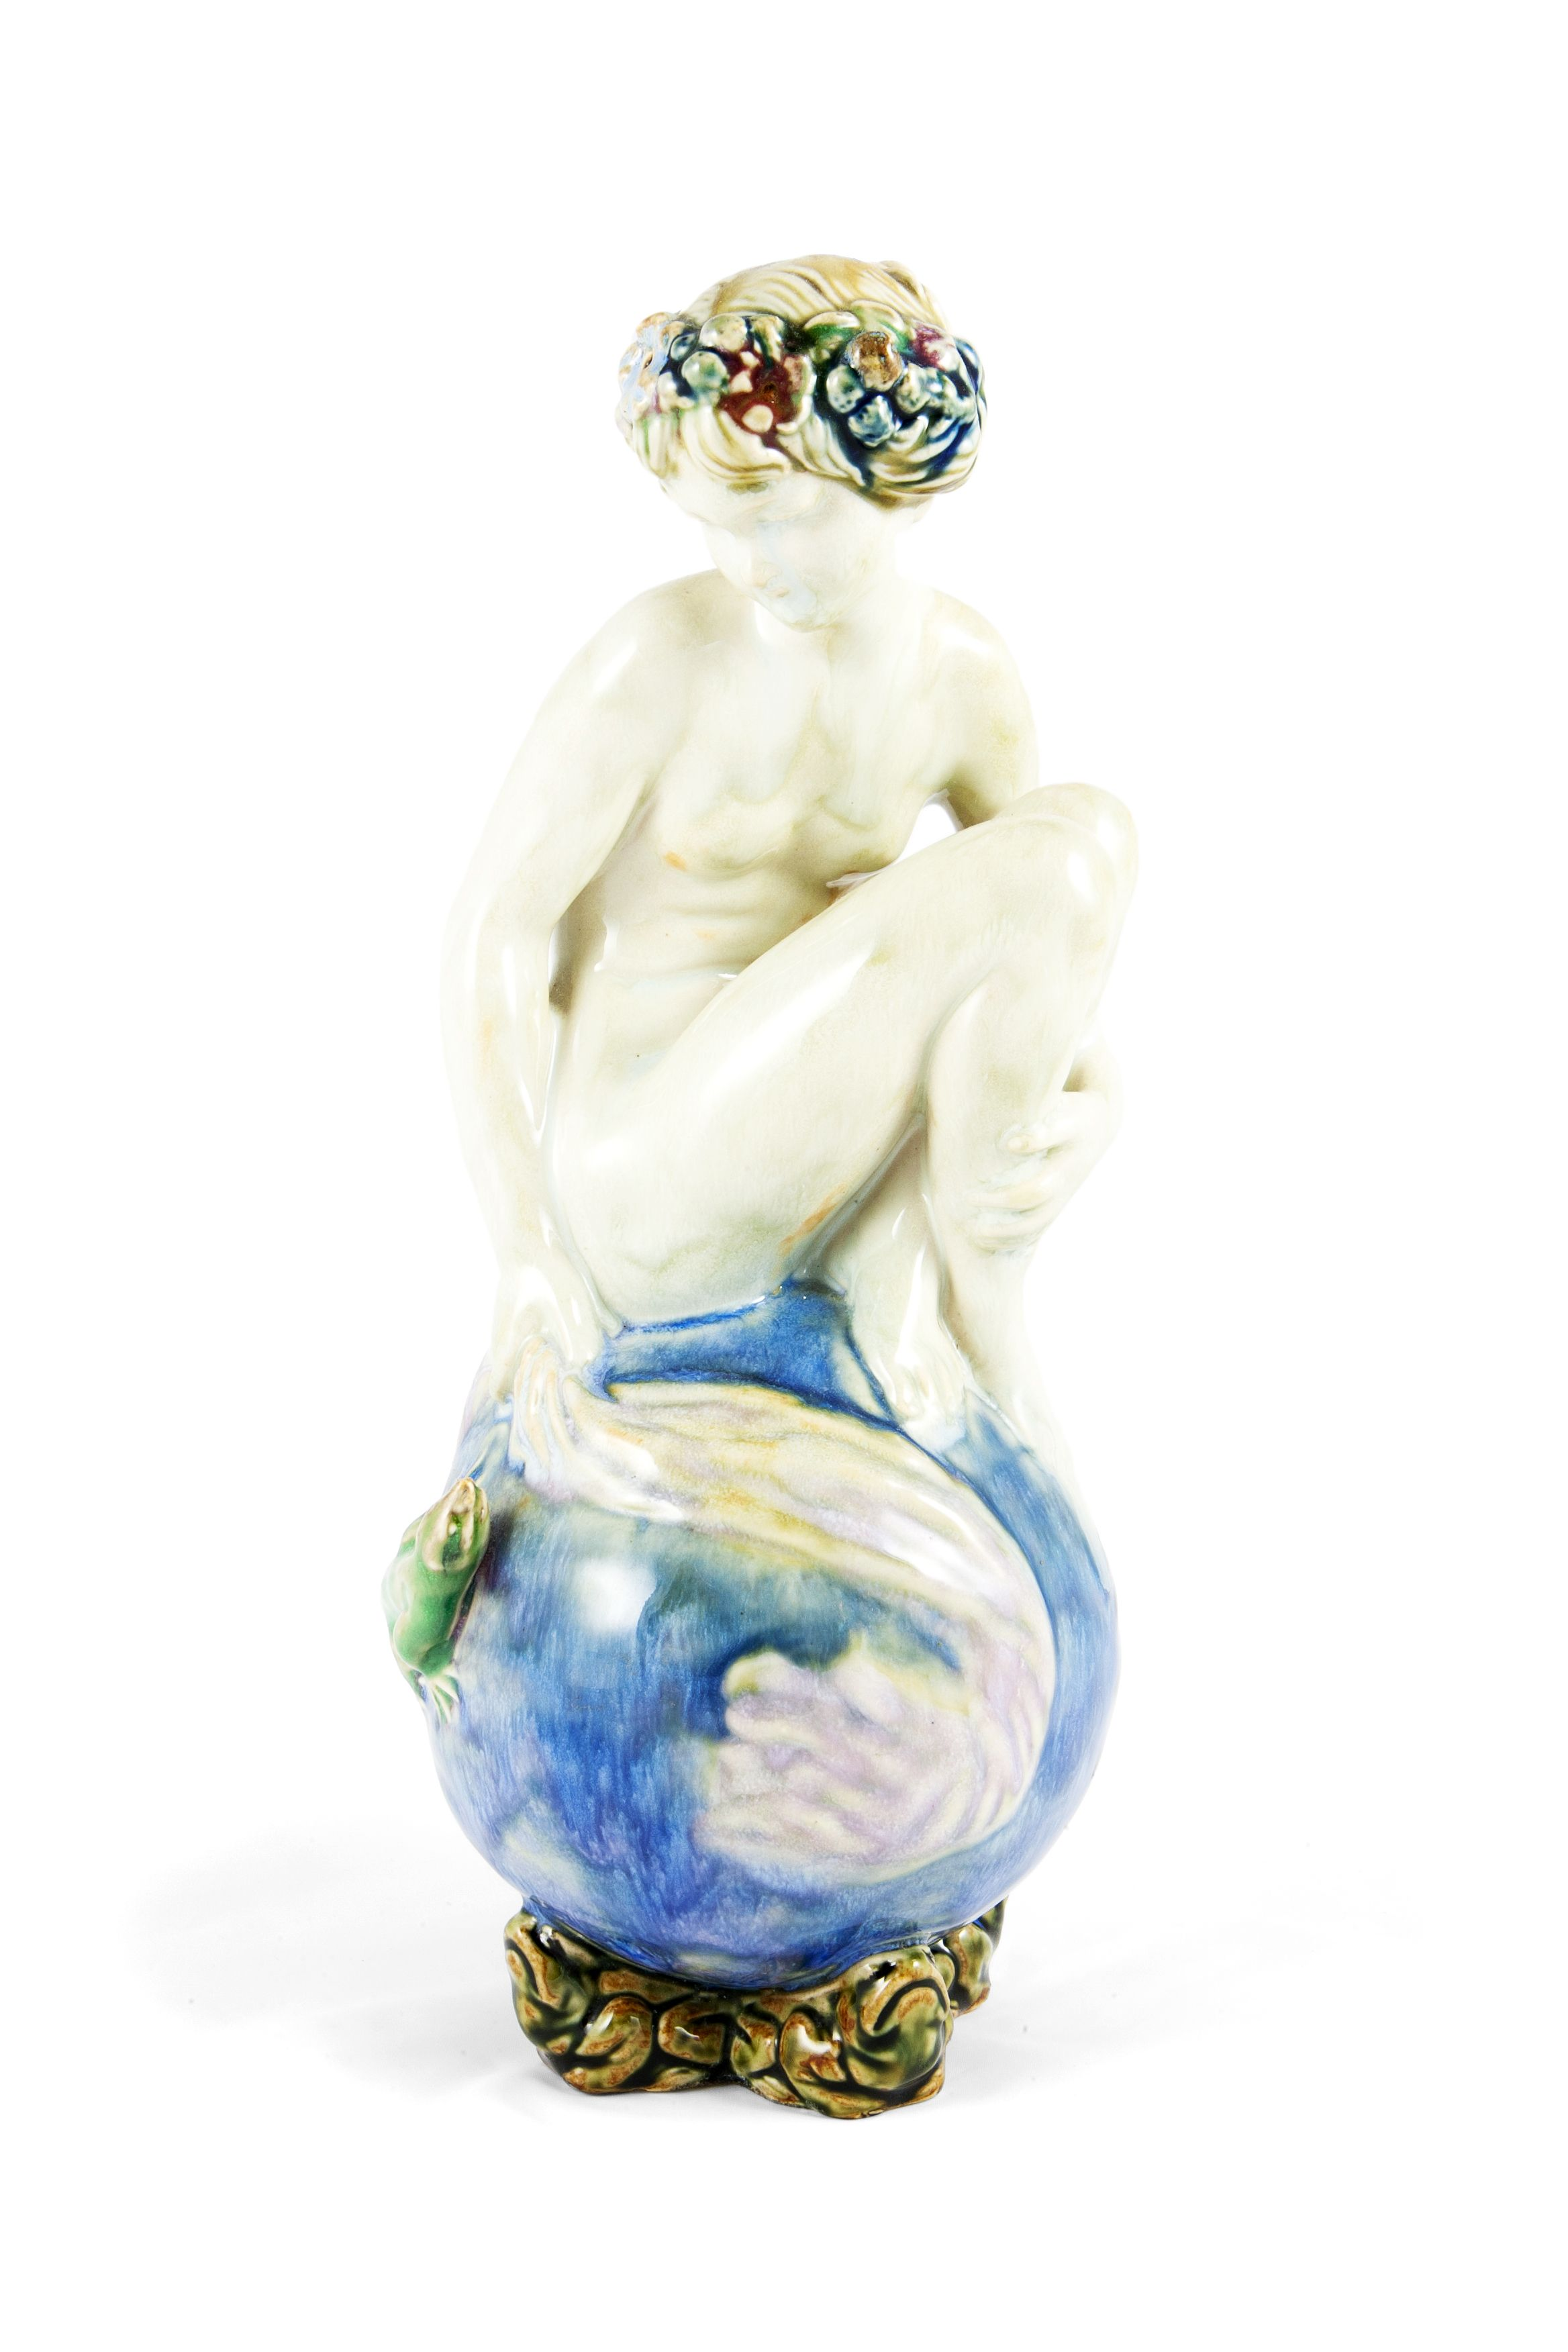 A beautiful Doulton porcellane figure representing a young girl having a bath and looking at a green lizard. C.1930